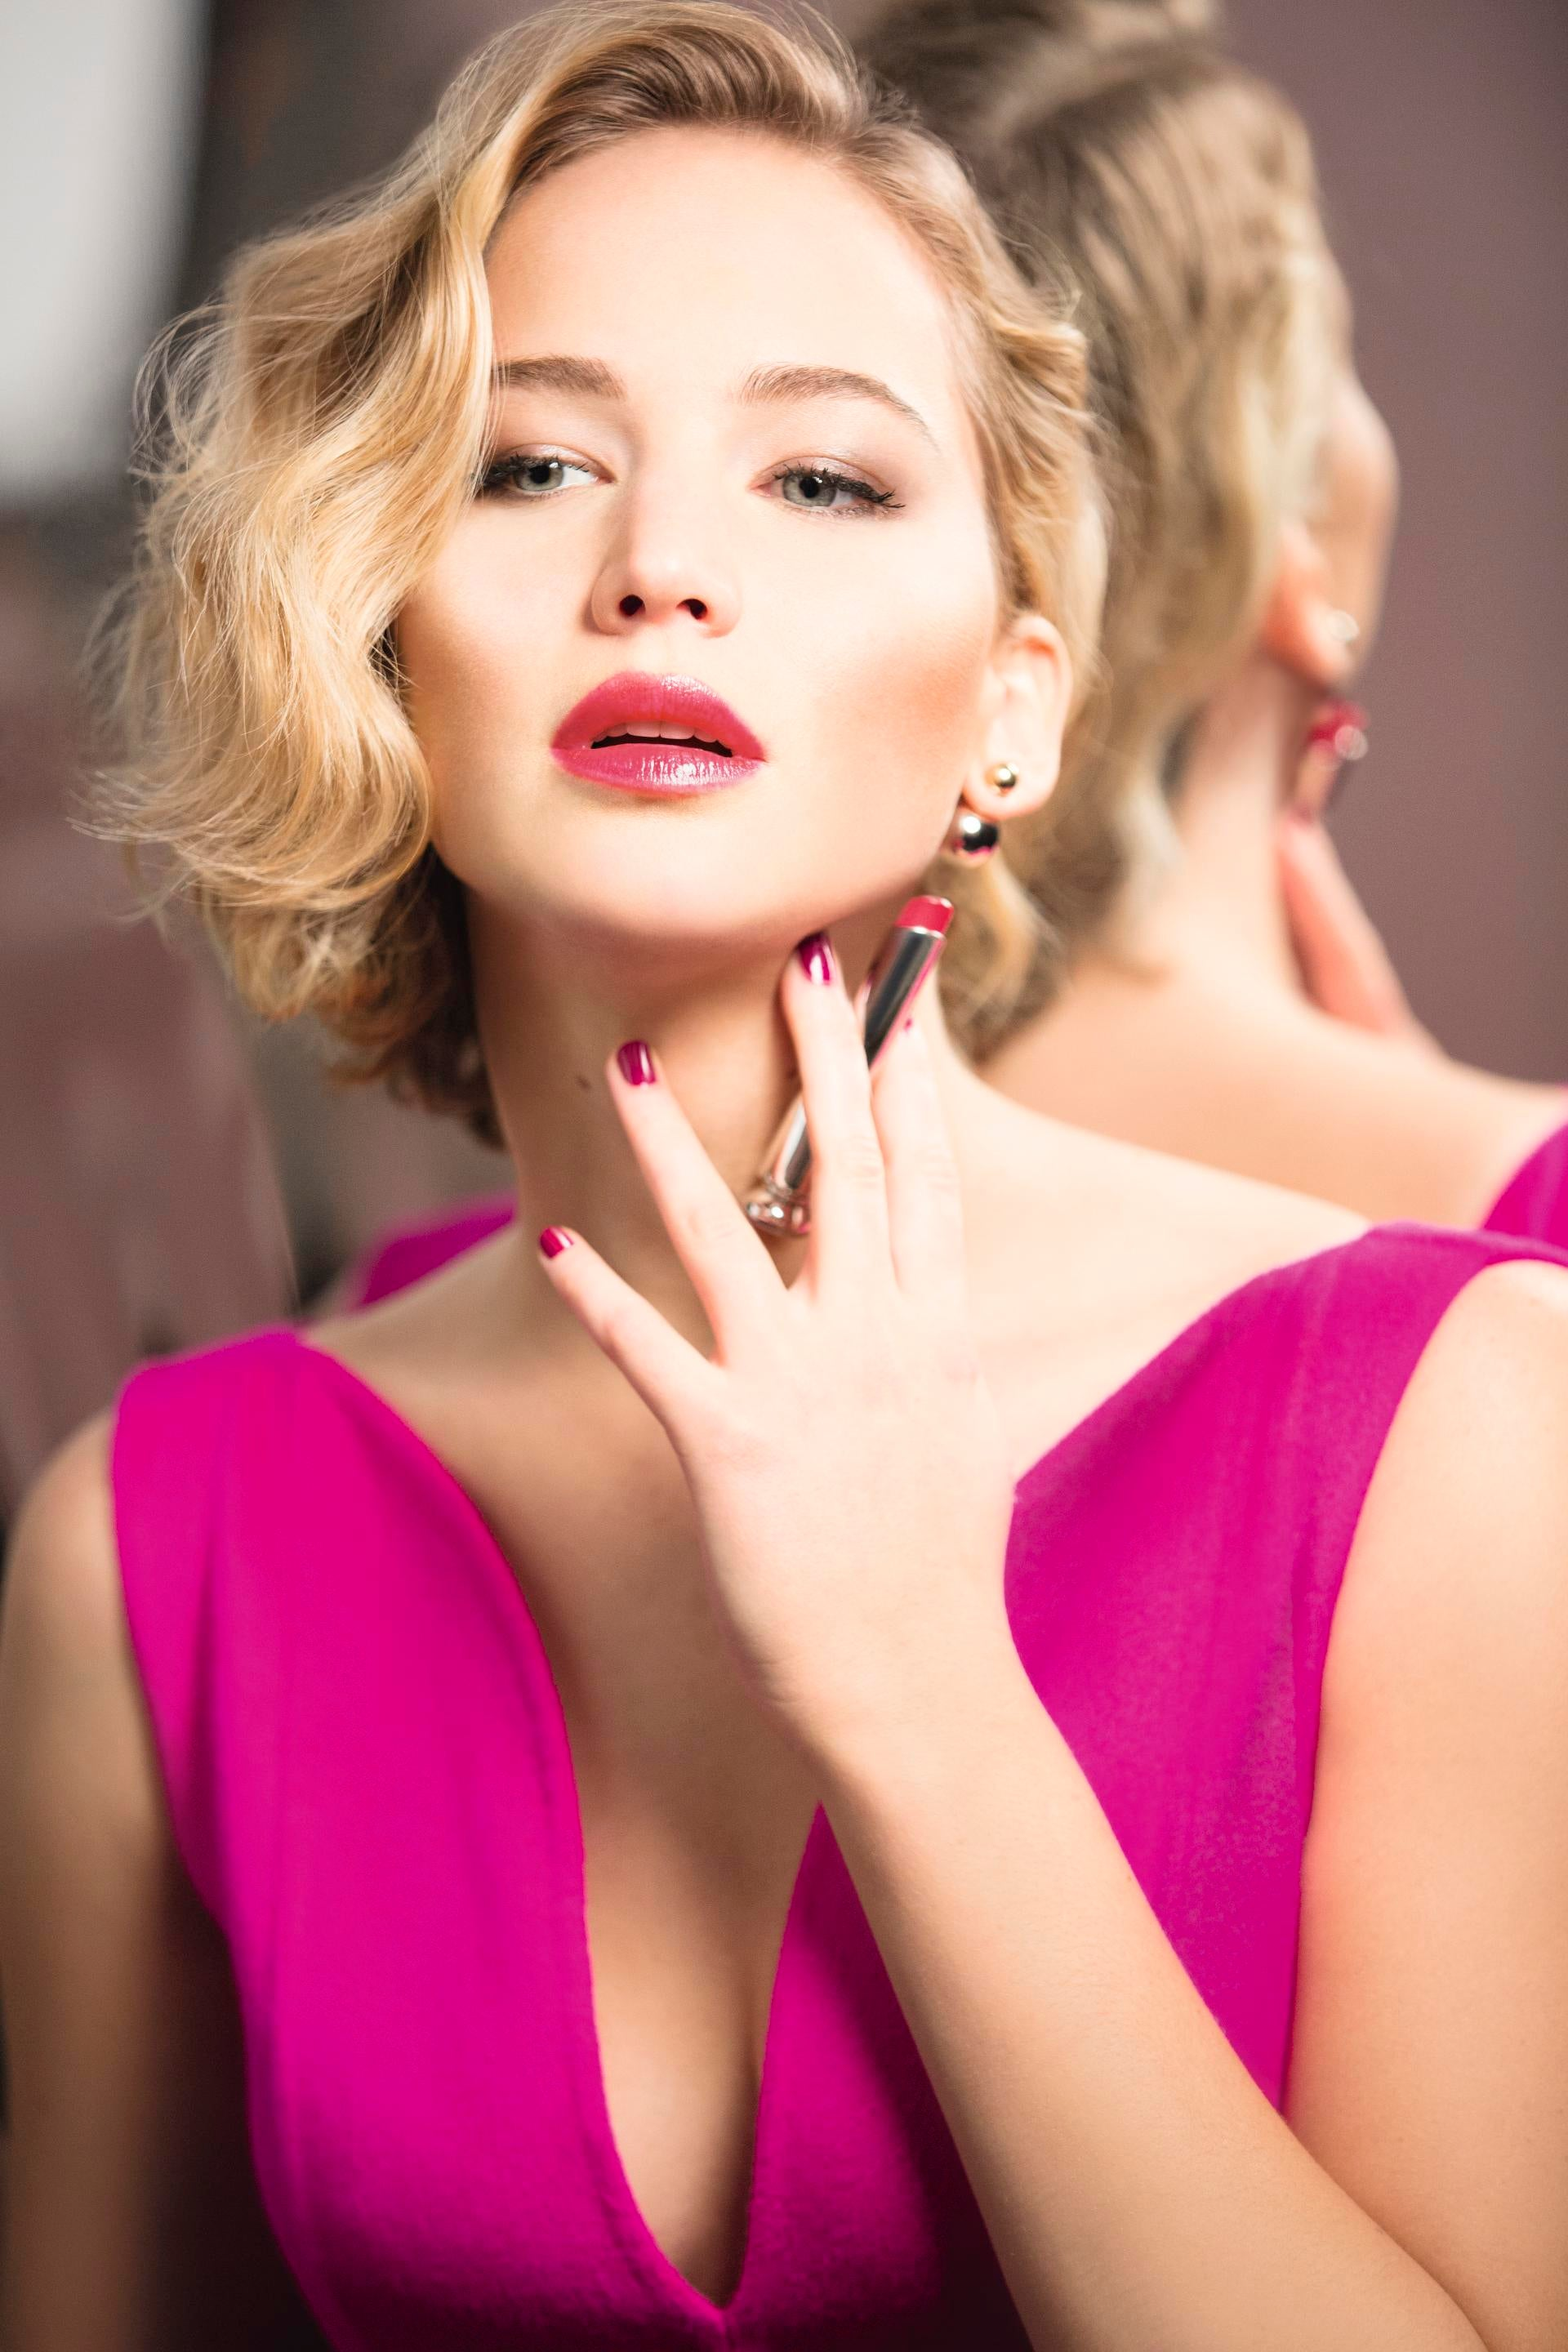 Dior Addict - The New Lipstick: Starring Jennifer Lawrence ...